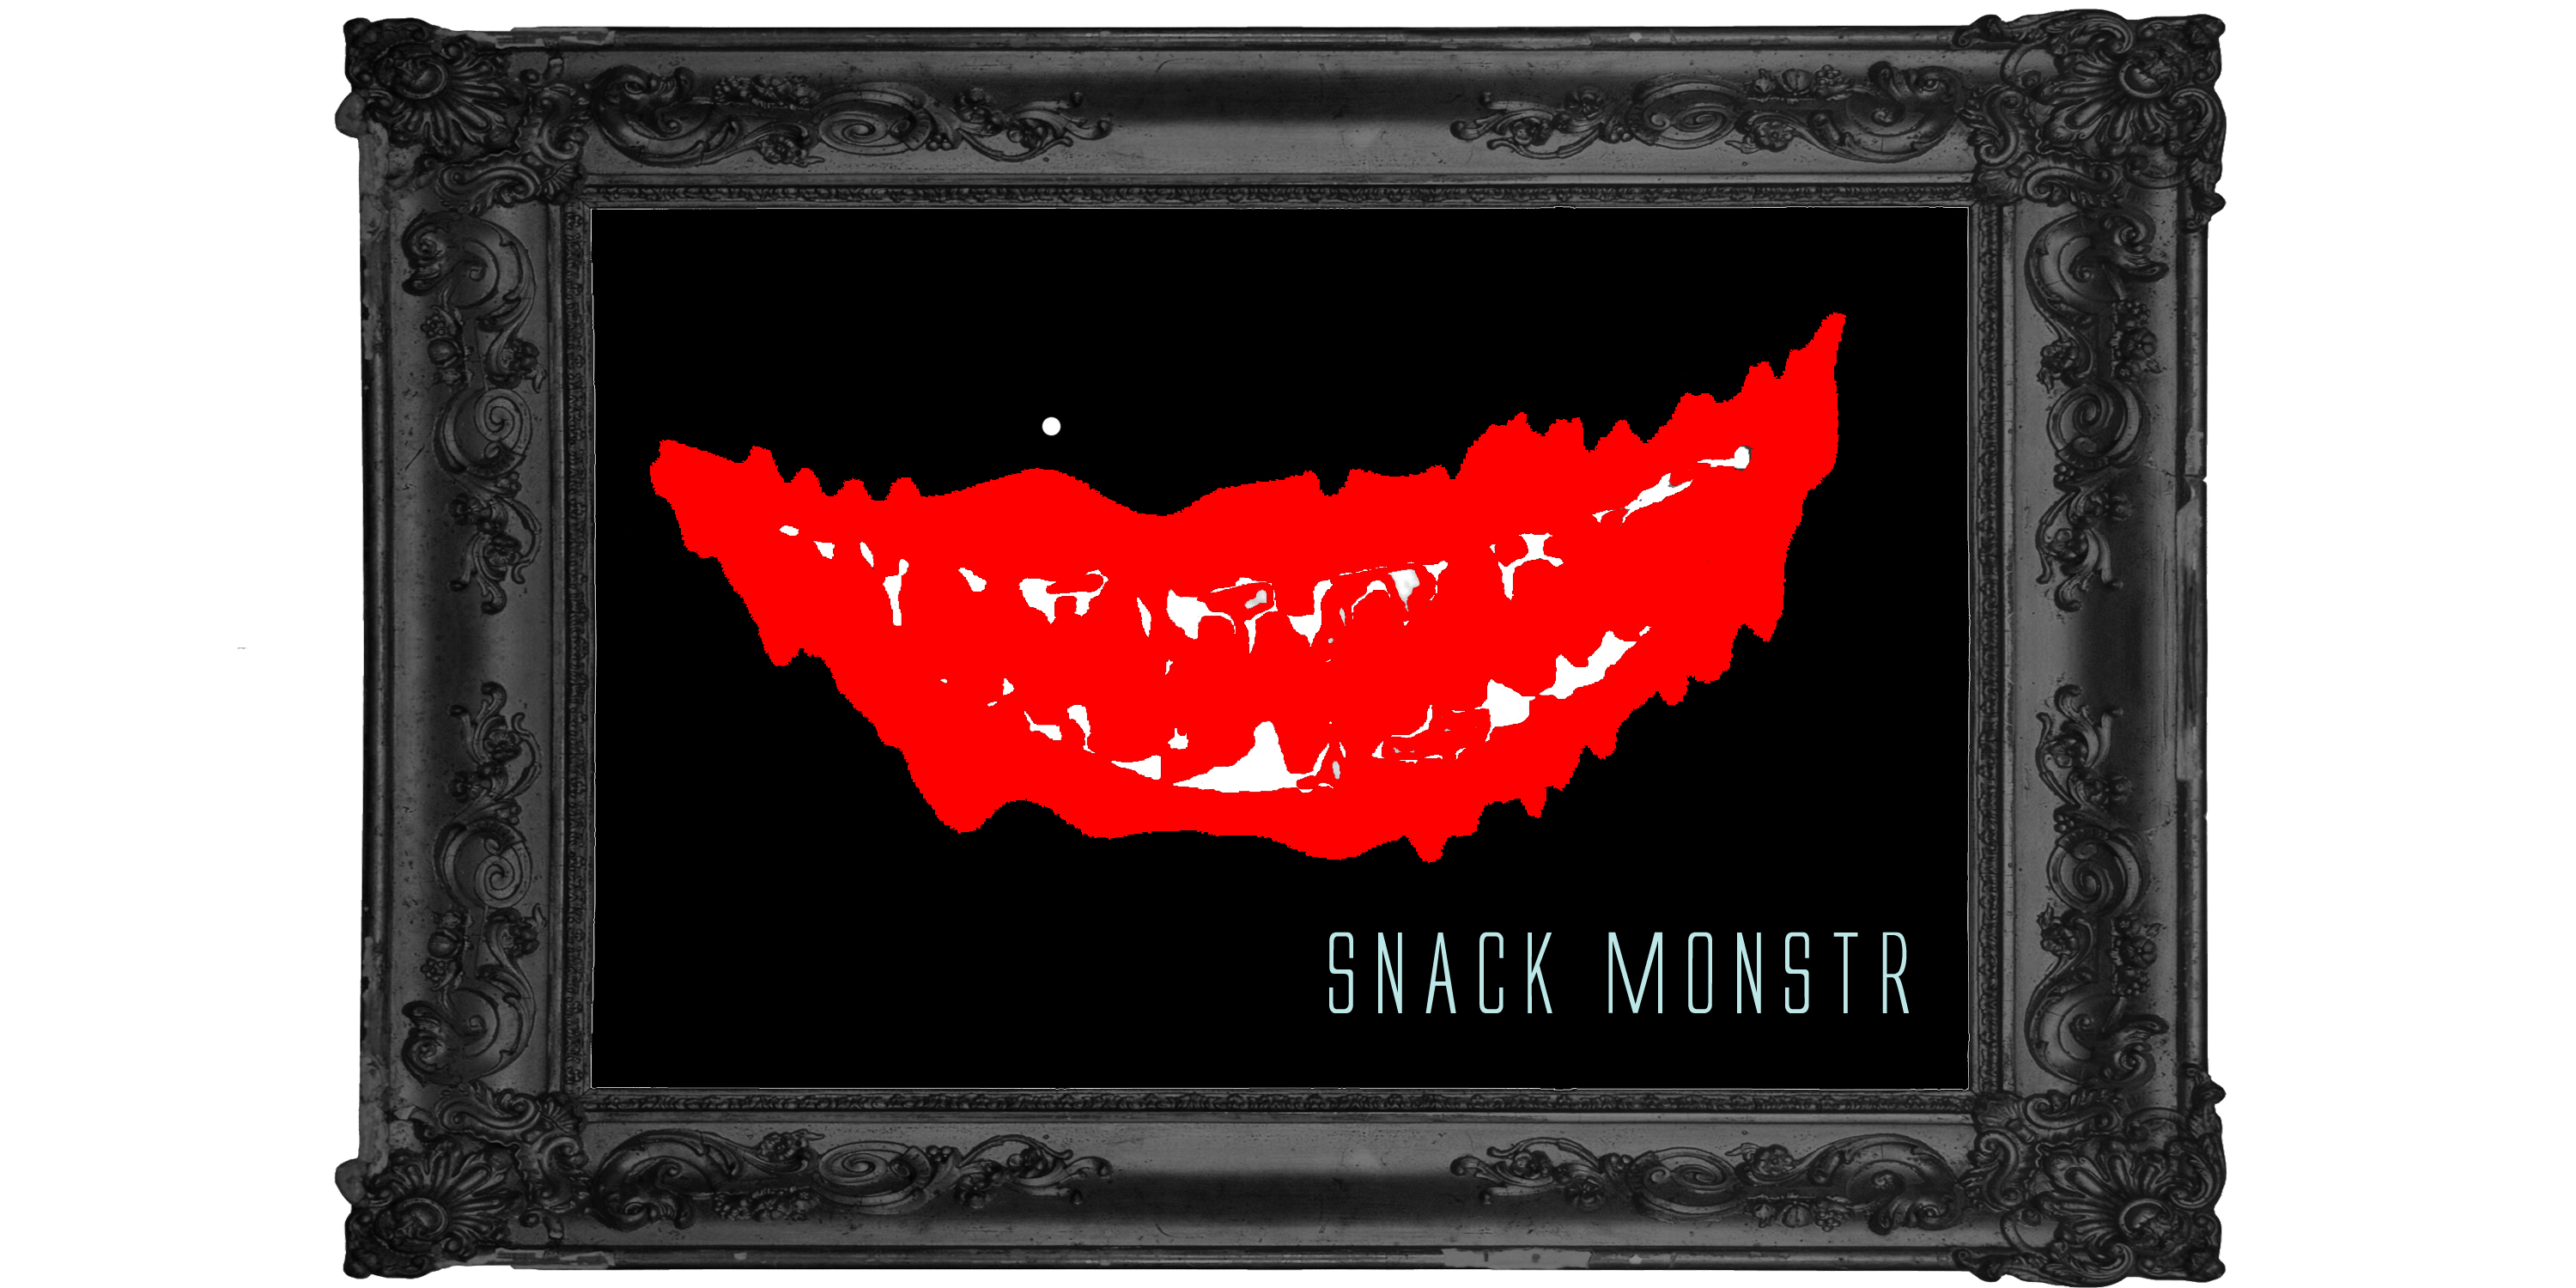 Snack Monstr